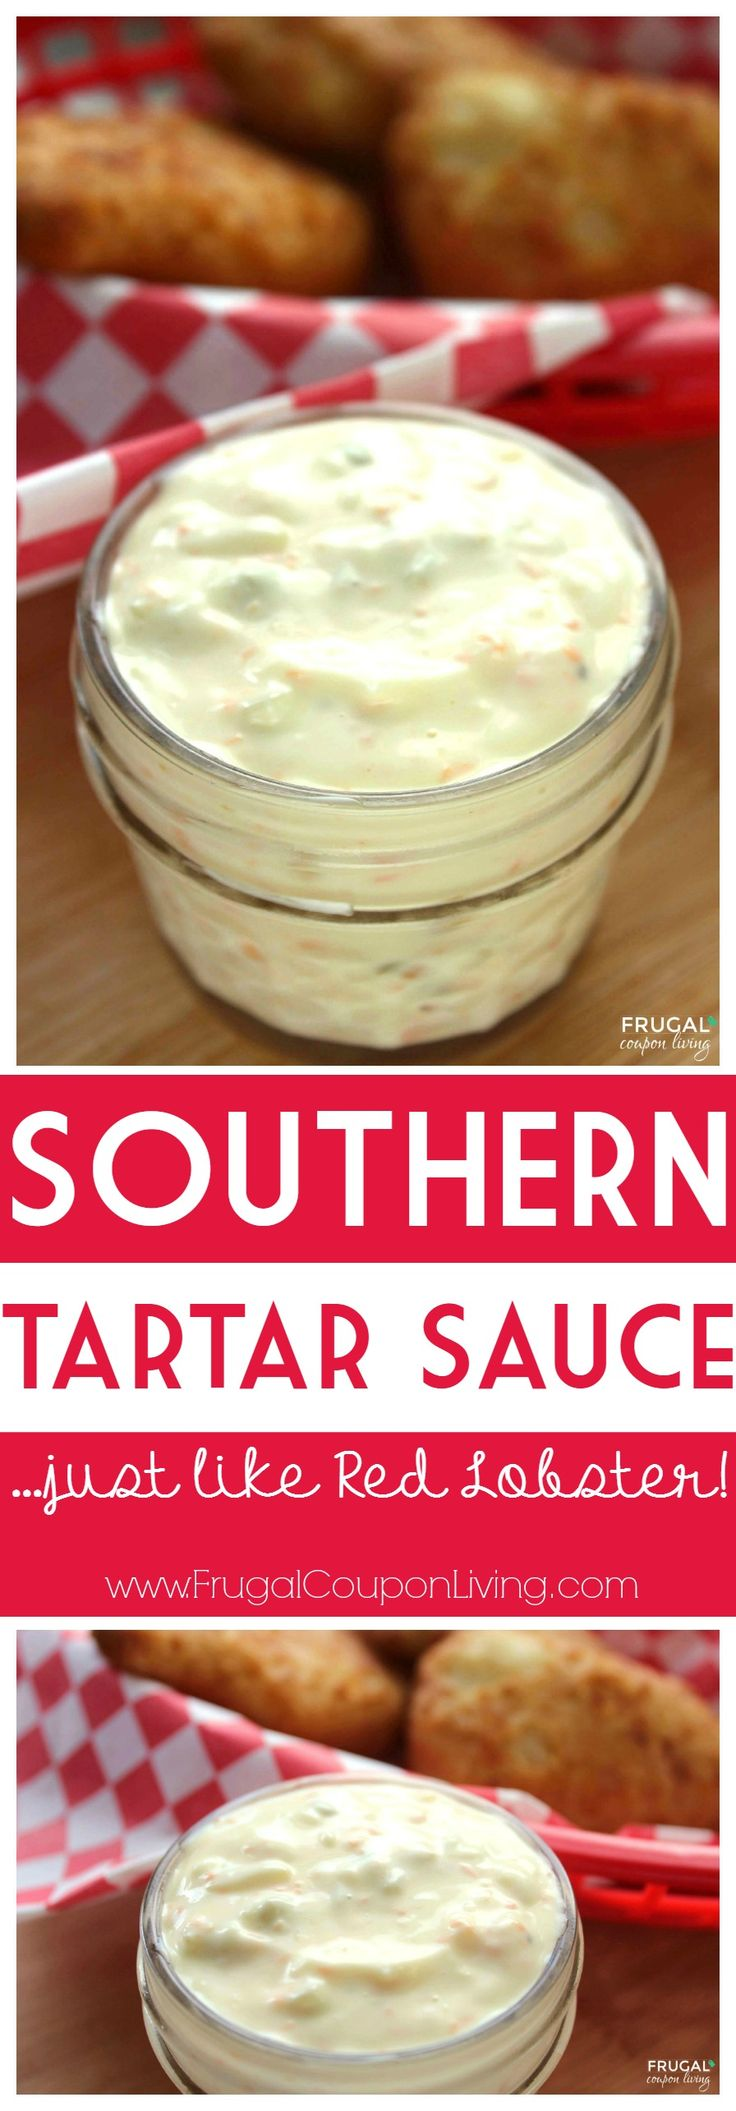 Southern Tartar Sauce Recipe, just like Red Lobster. Perfect dip for fish and chips! Recipe on Frugal Coupon Living.